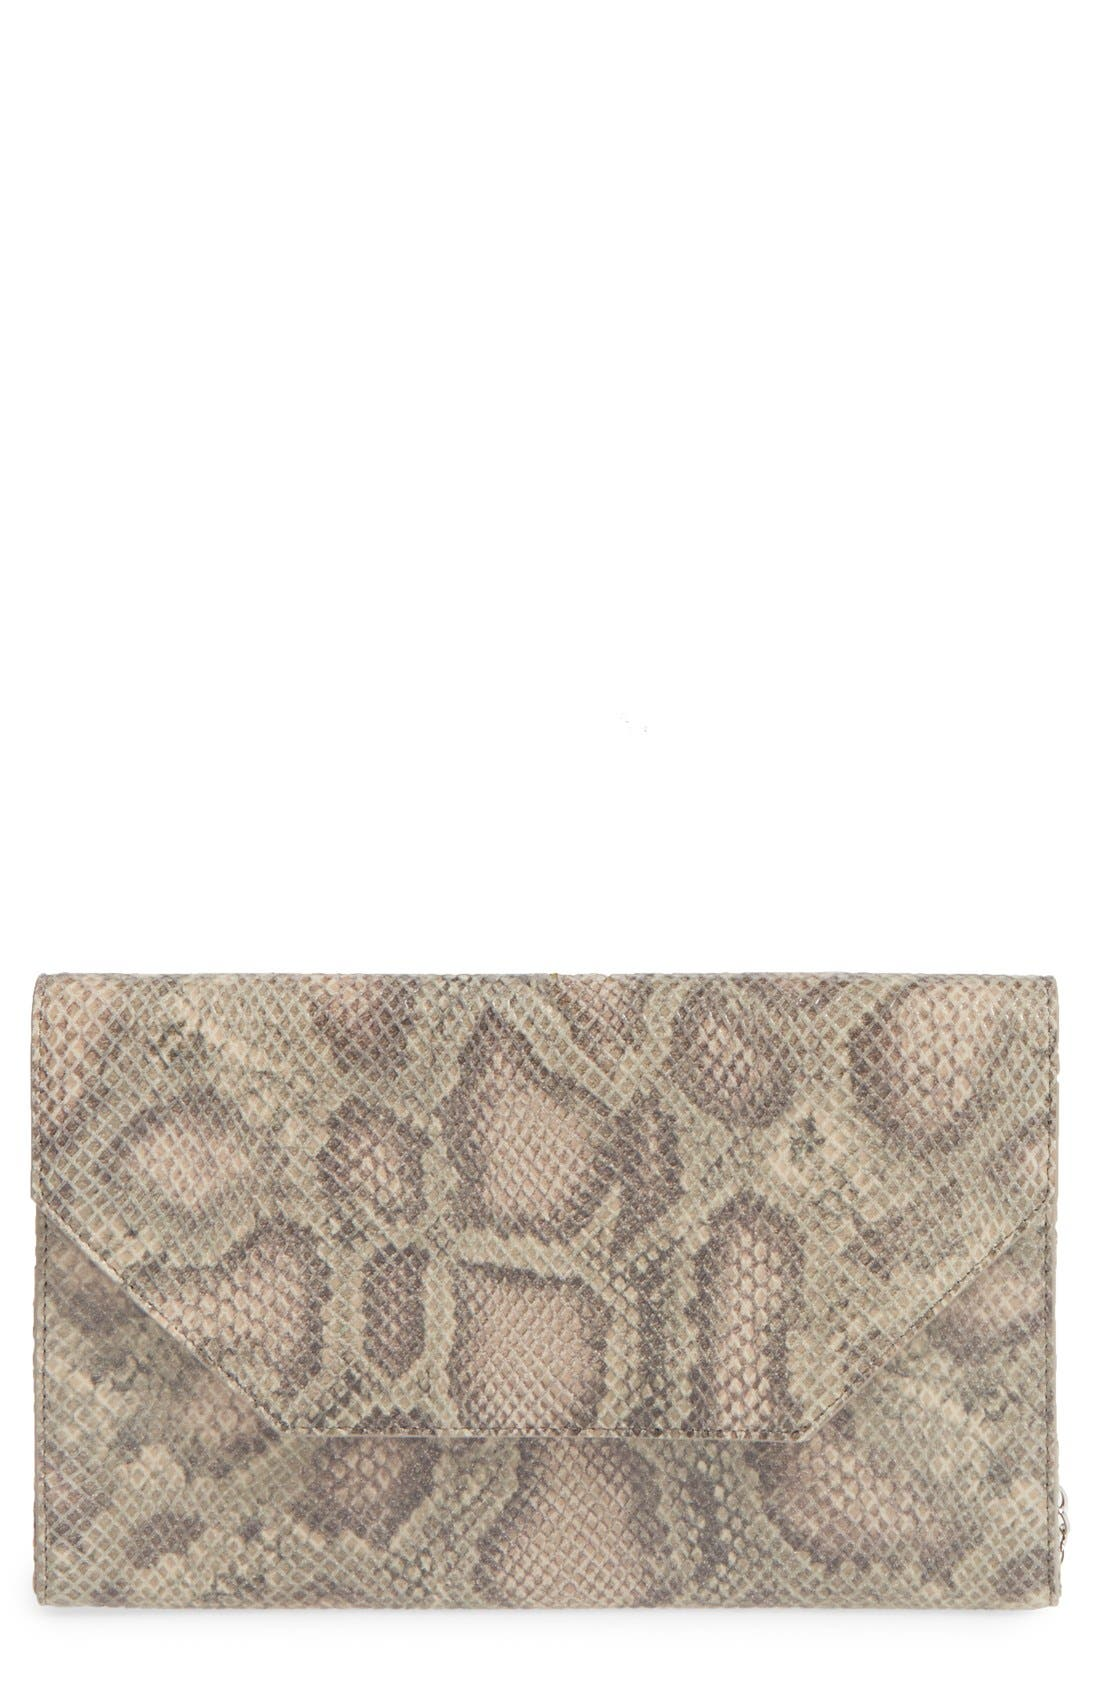 Angled Leather Day Clutch,                         Main,                         color, Brown Falcon Snake